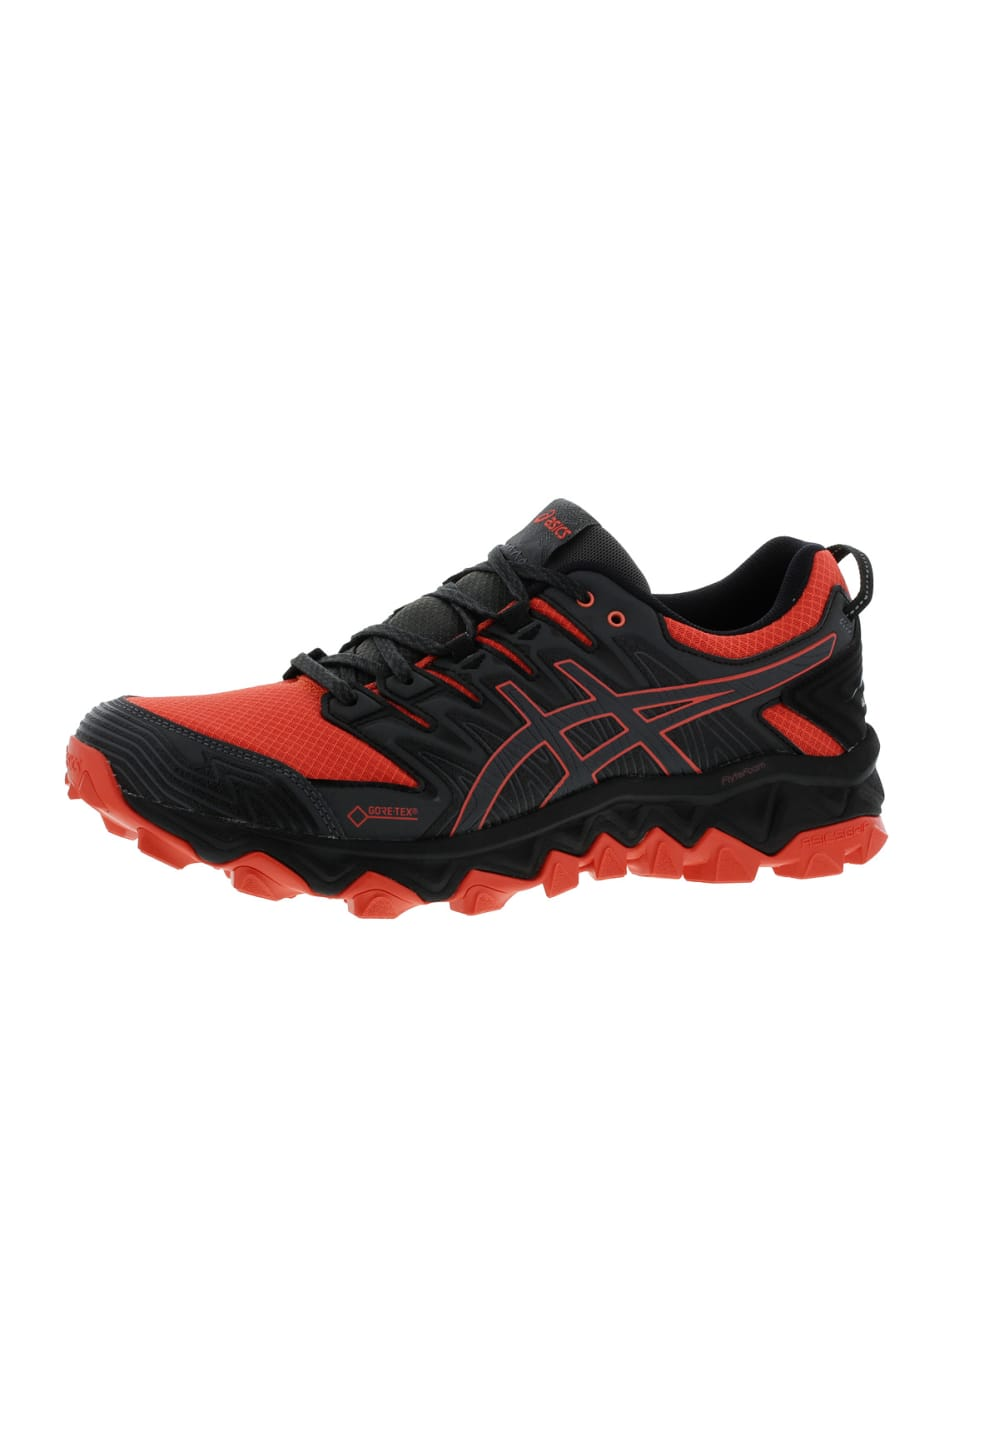 Fujitrabuco Rouge 7 Pour G Gel Asics Chaussures Homme Running Tx MpSUVz